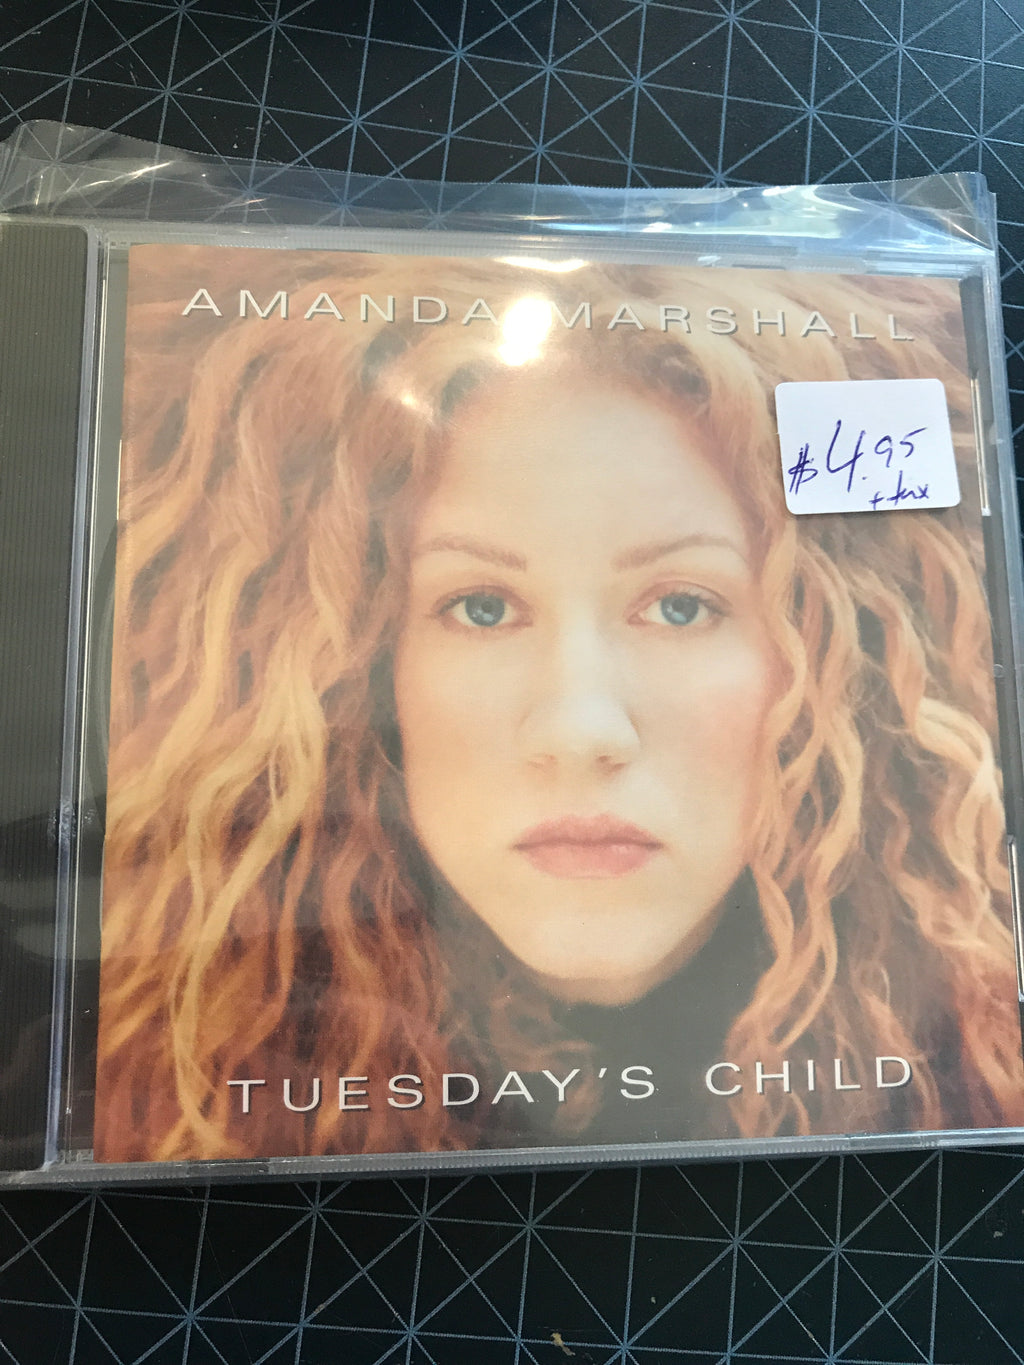 Amanda Marshall - Tuesday's Child - Used CD